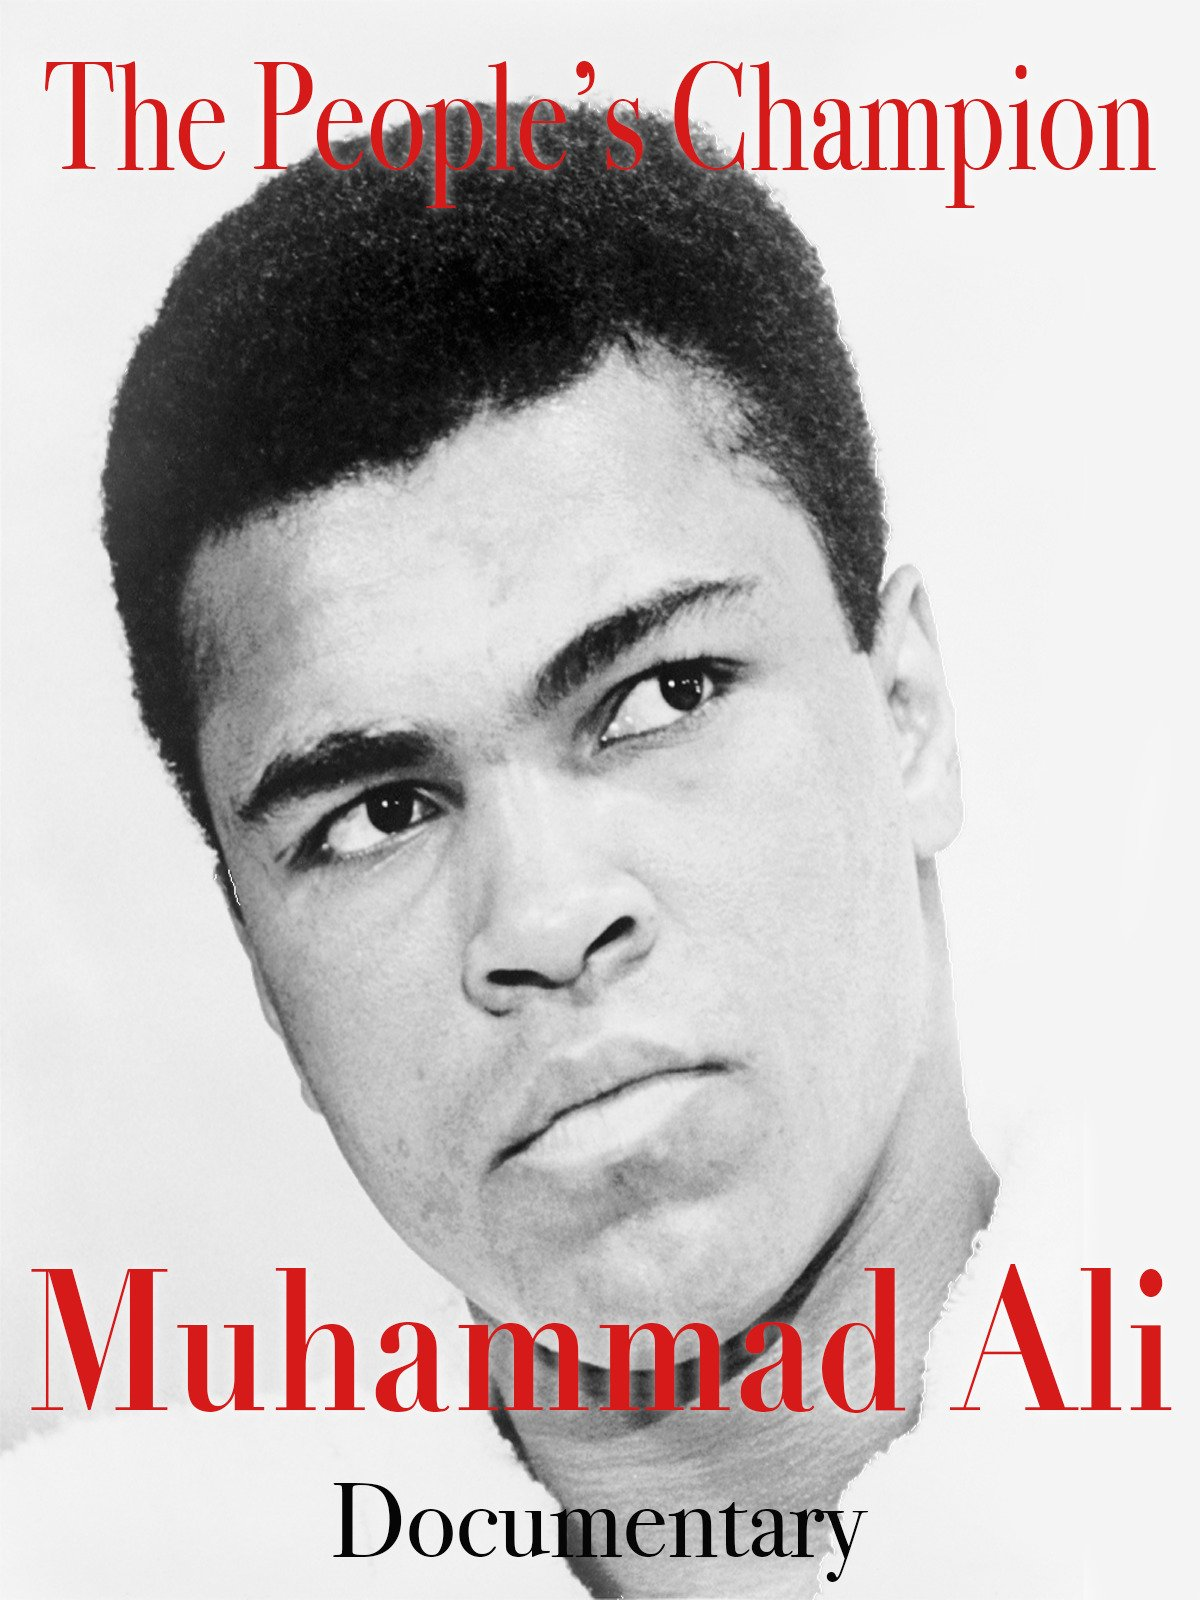 The People's Champion Muhammad Ali Documentary